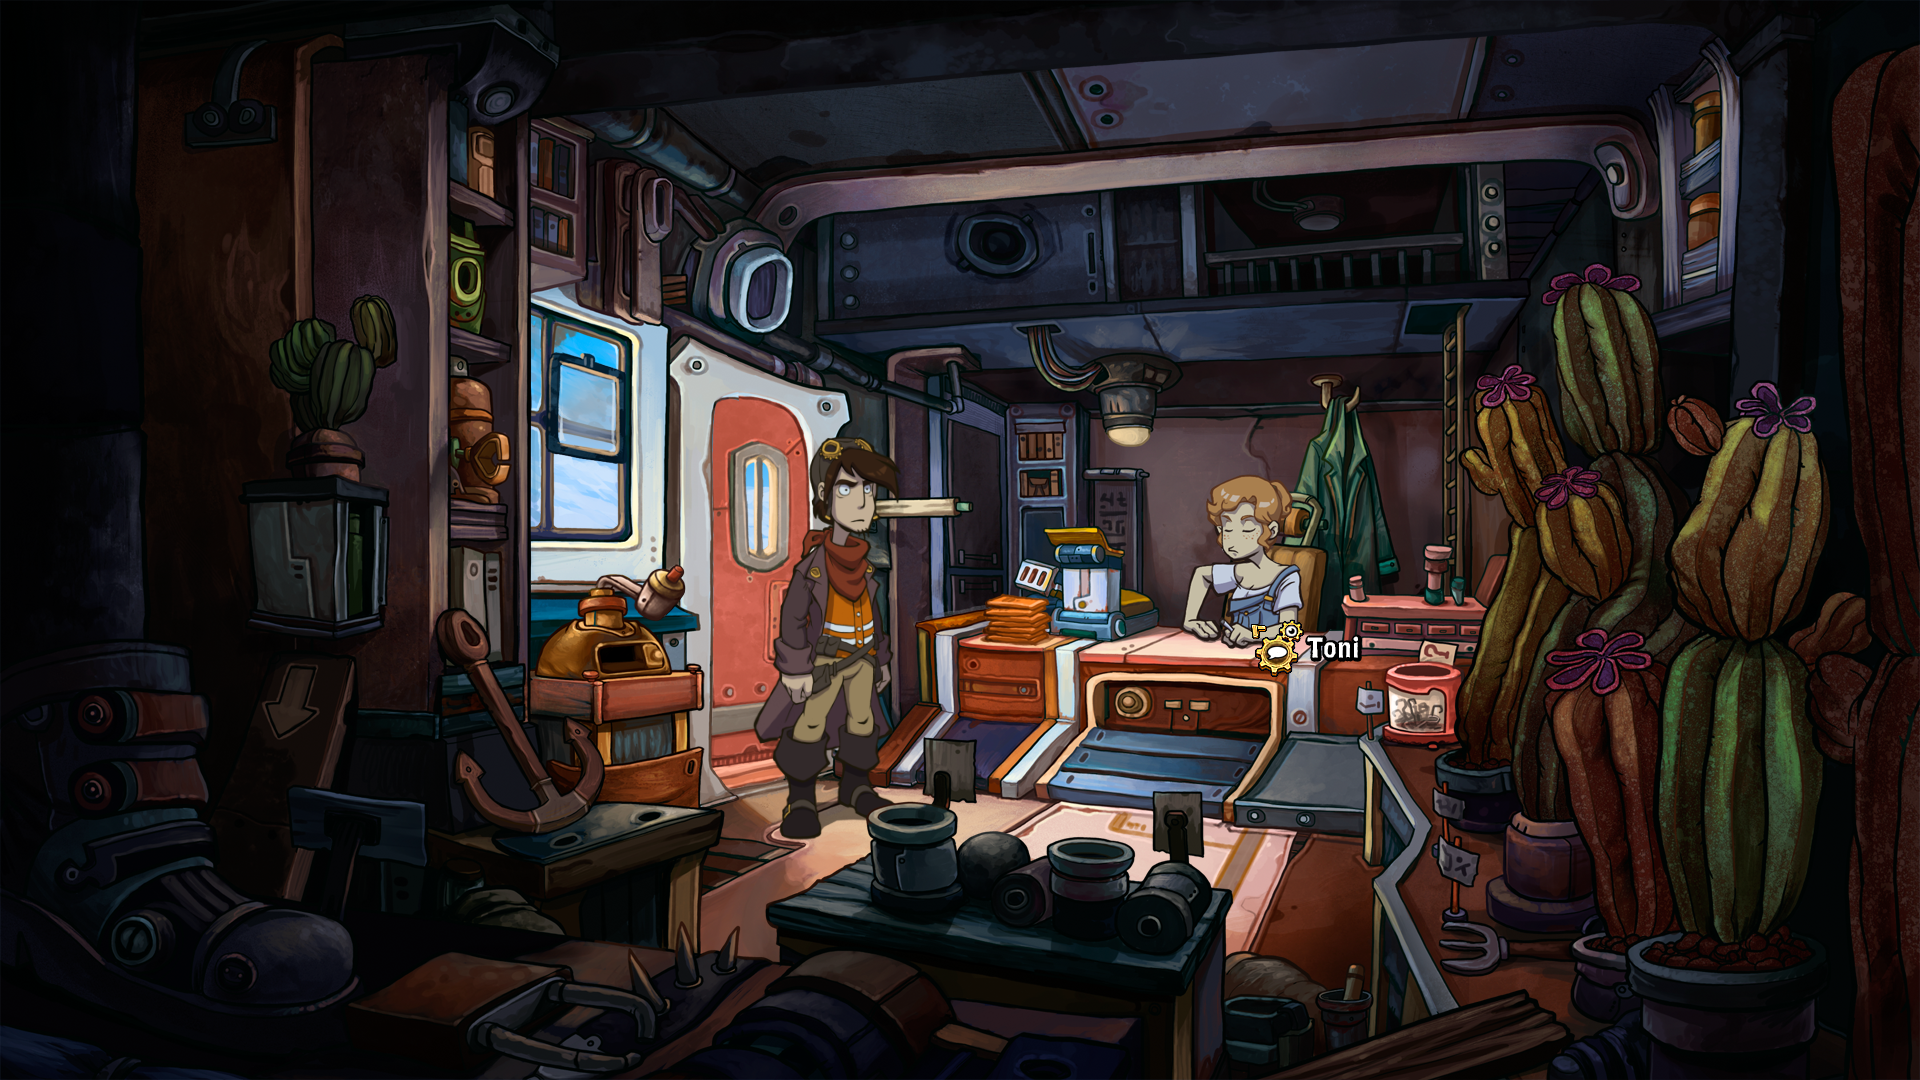 Deponia Windows This is Toni, Rufus'ex